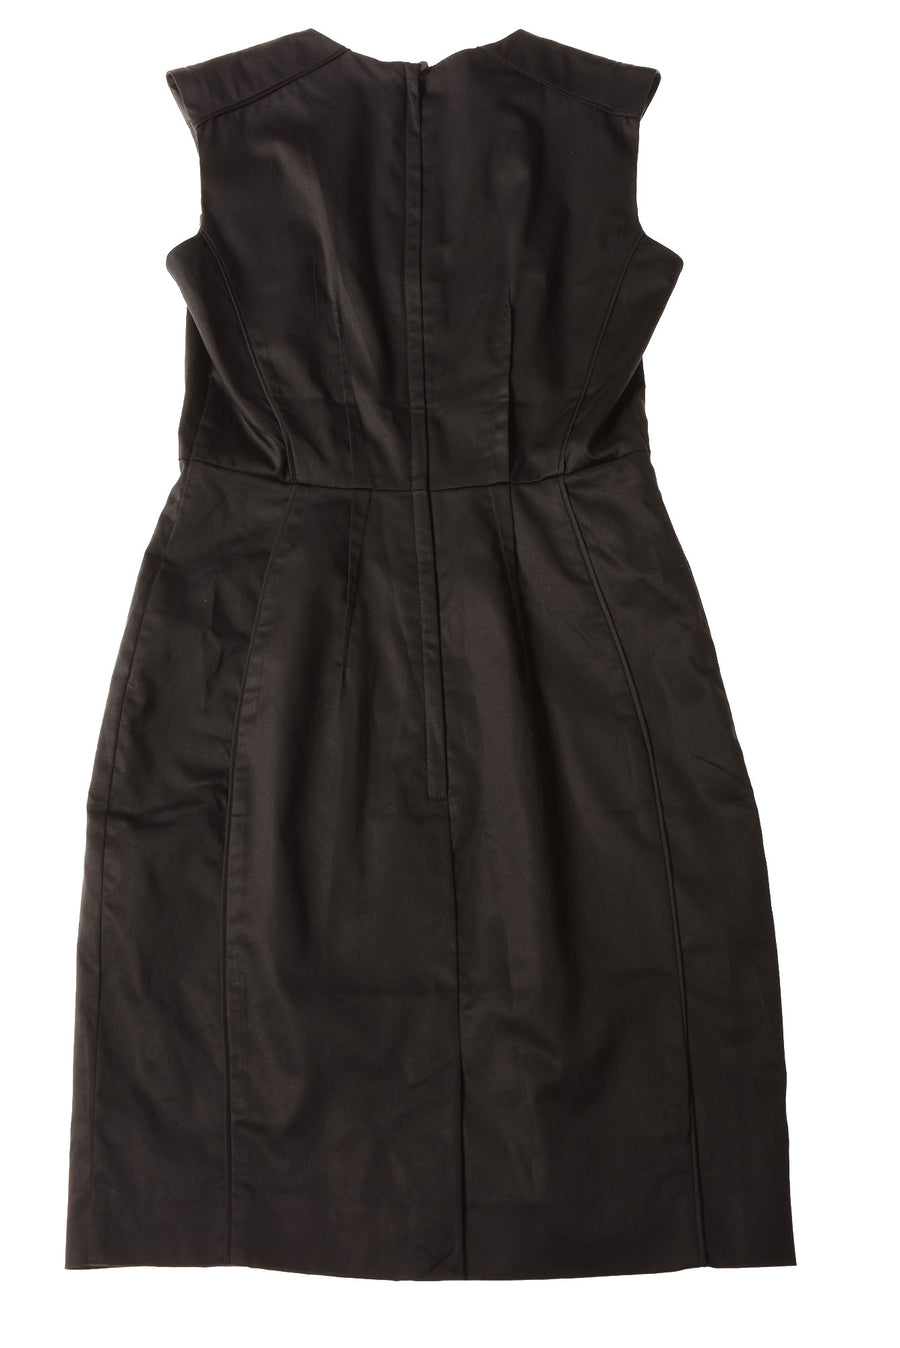 NEW H&M Women's Dress 6 Black